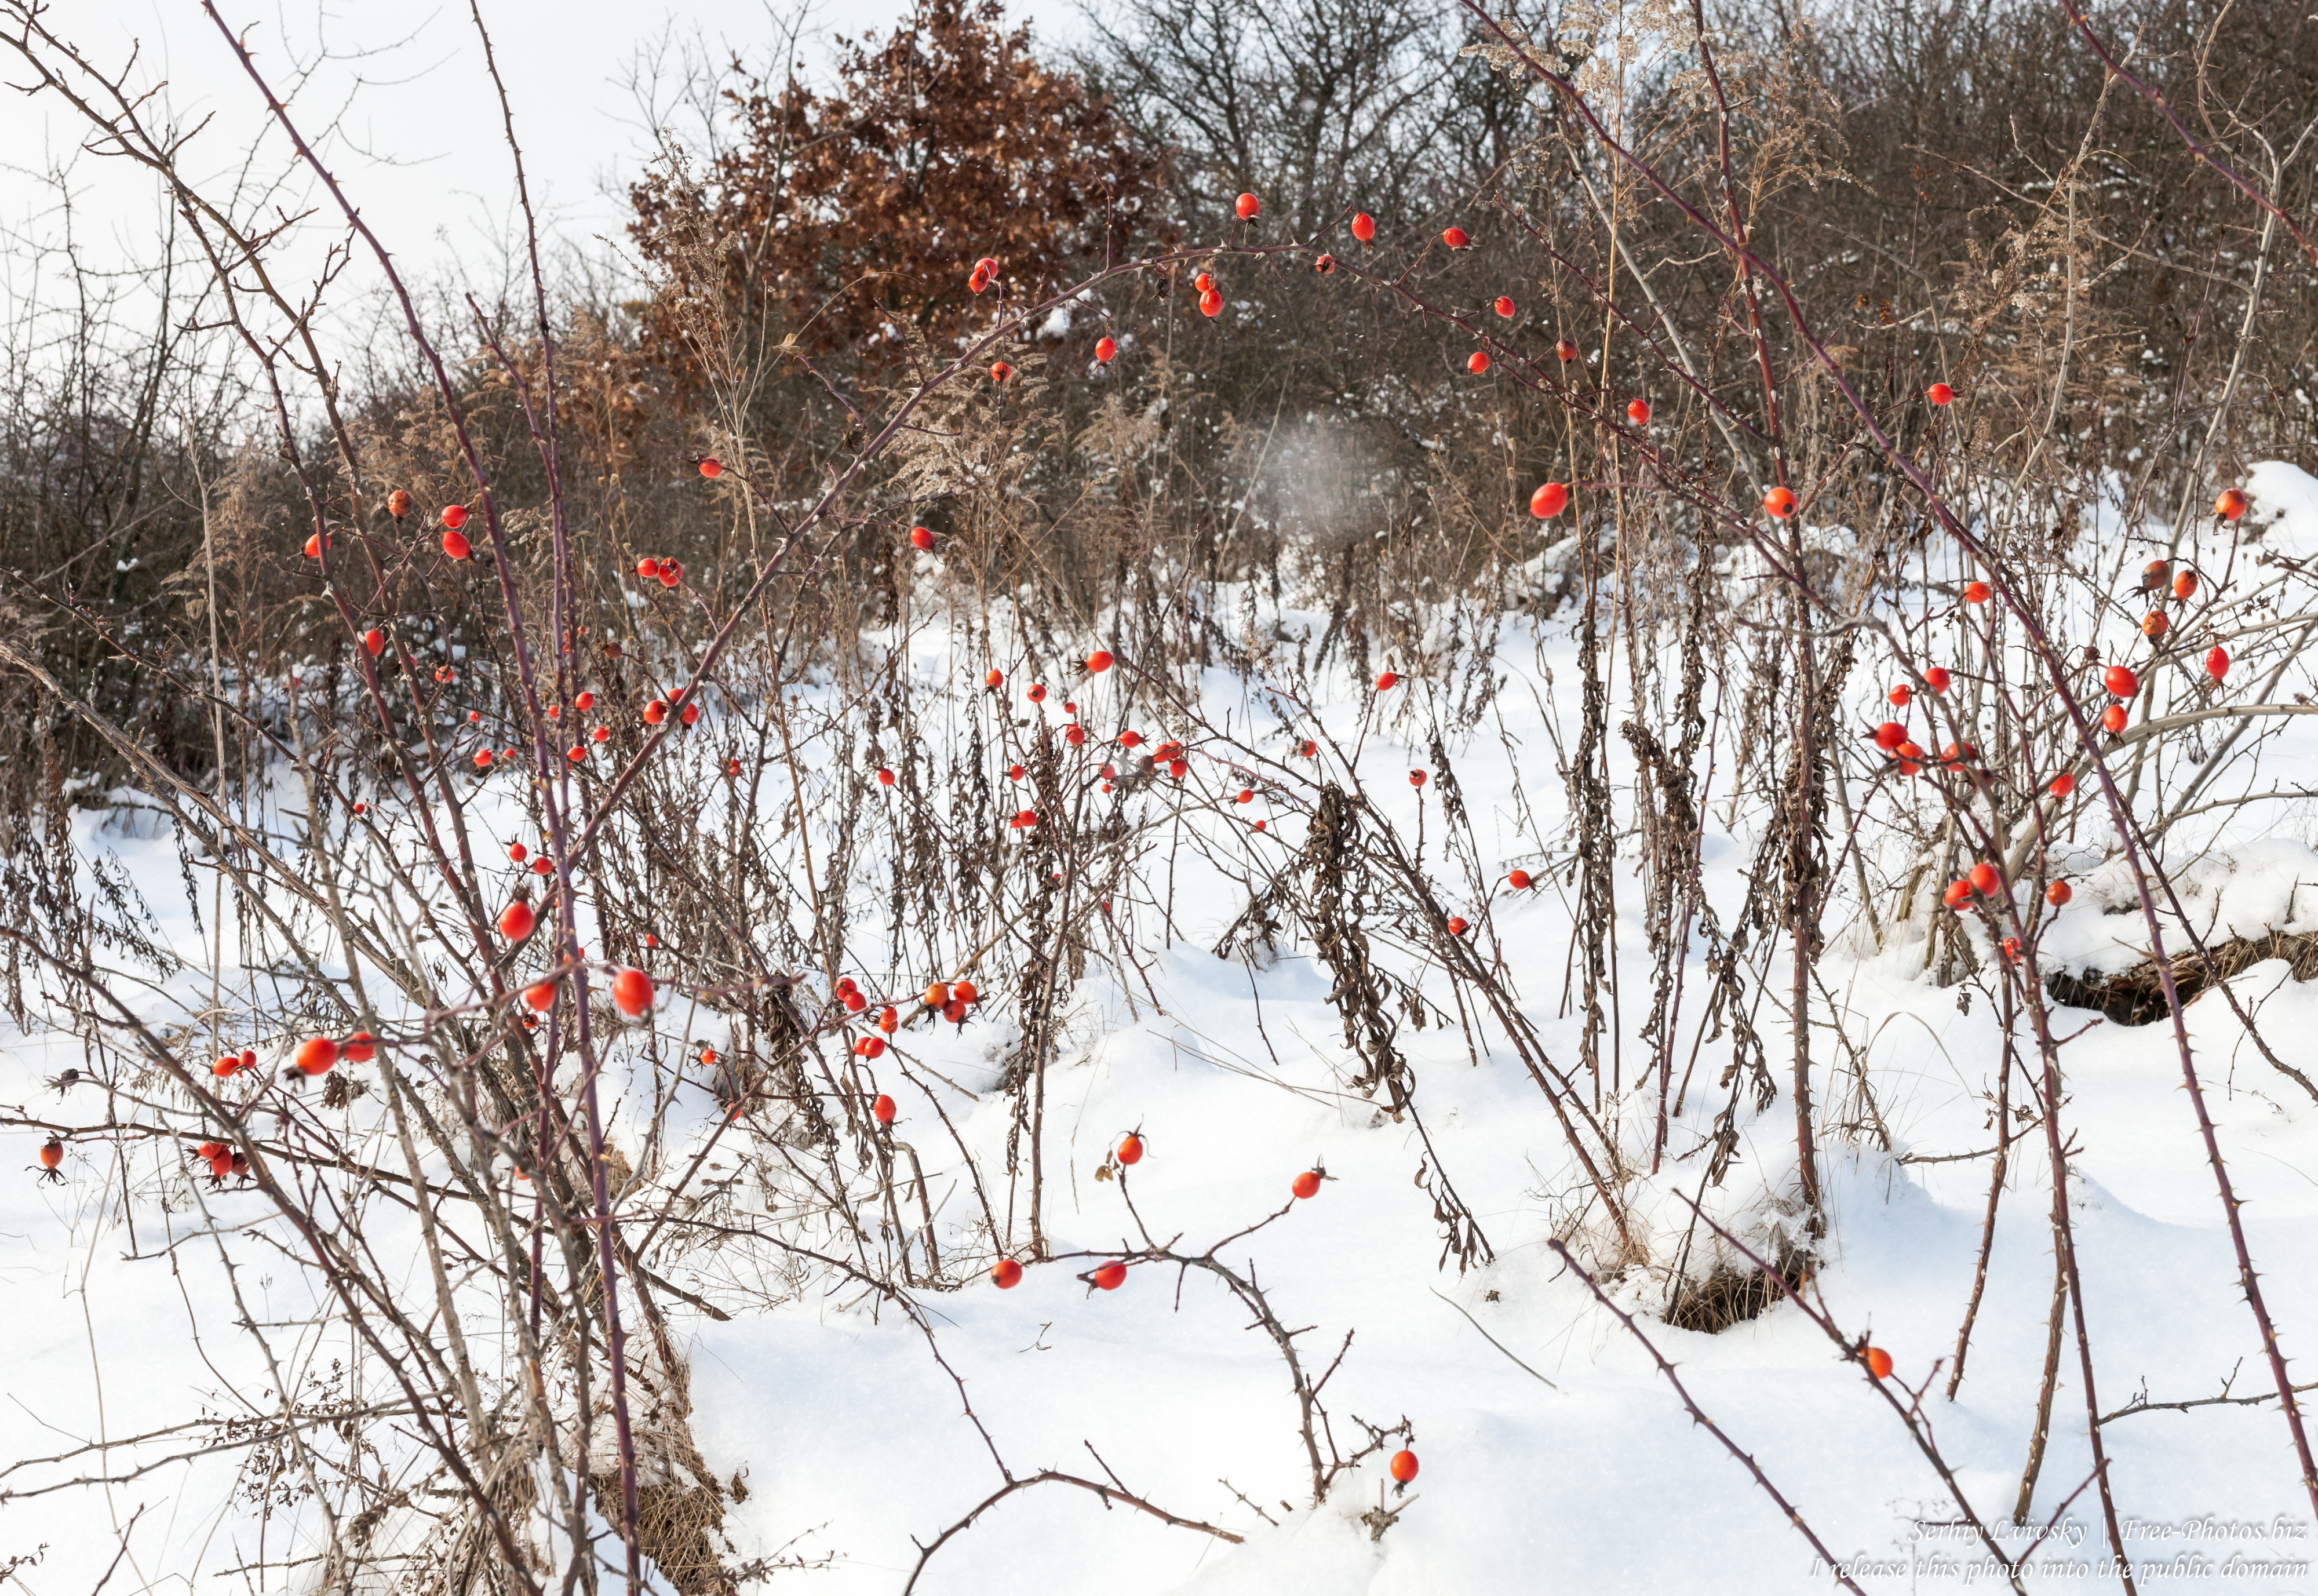 nature_in_rivne_region_of_ukraine_photographed_by_serhiy_lvivsky_in_january_2019_03